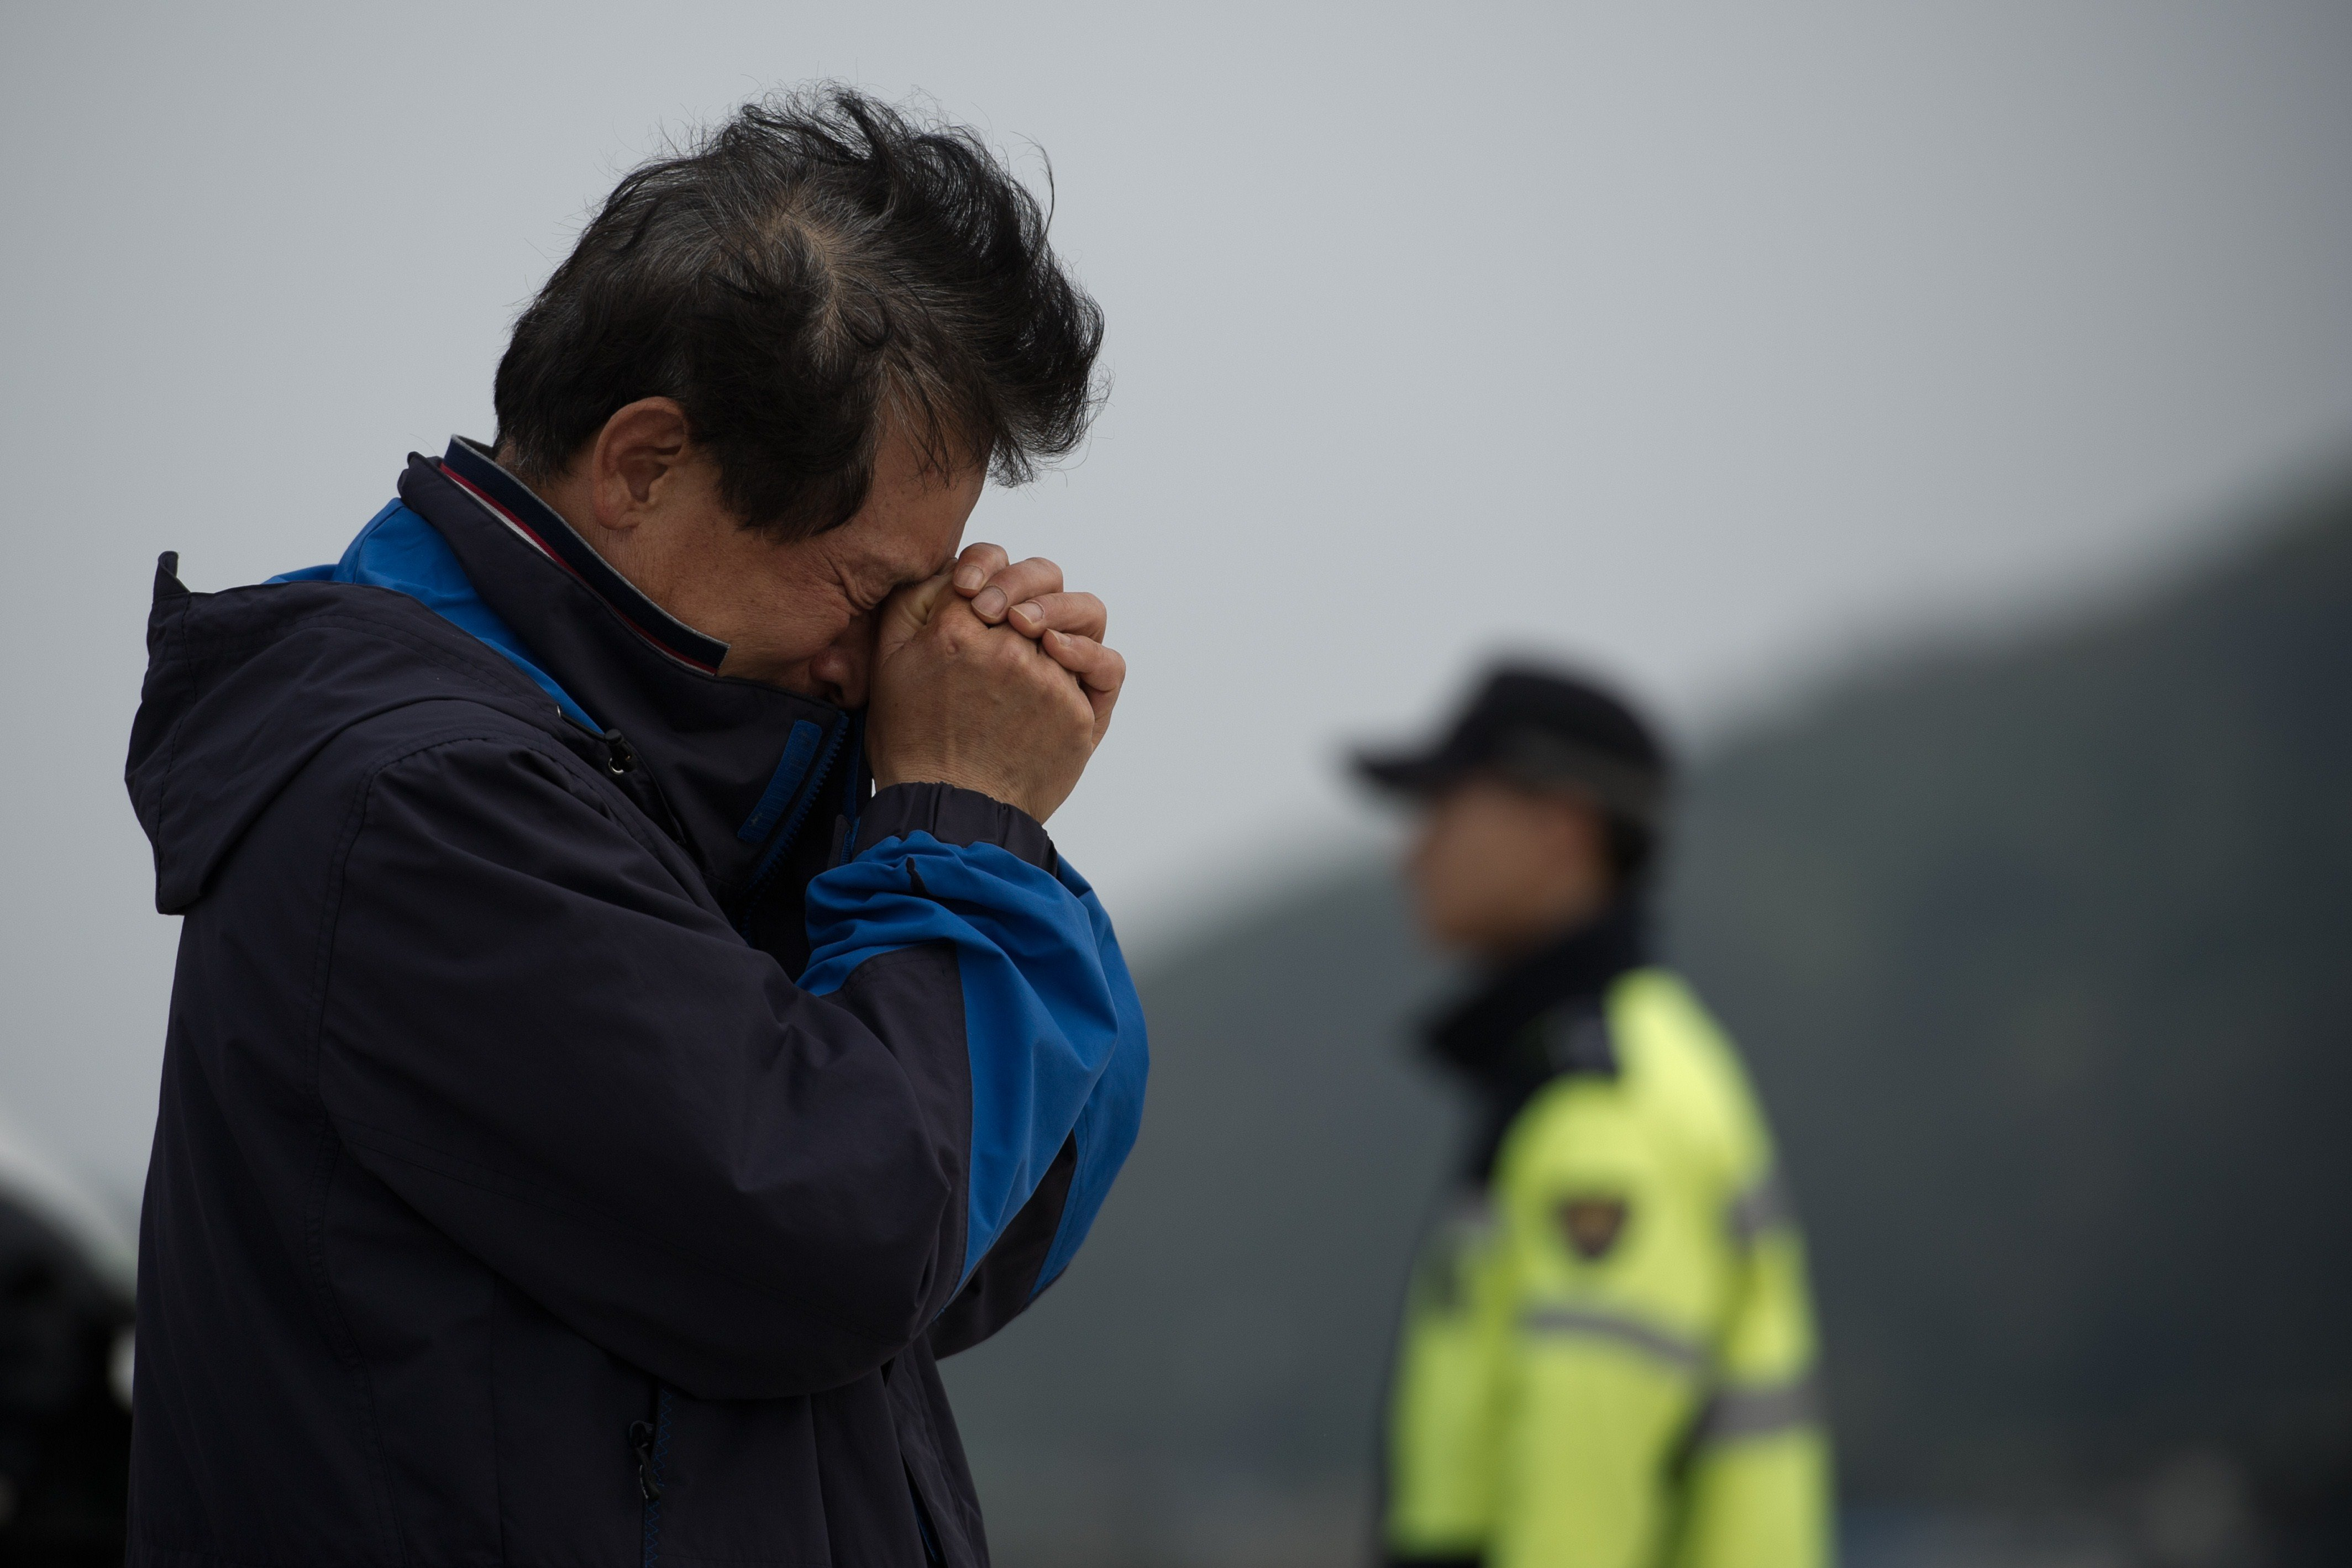 A relative weeps at an area where family members of victims of the South Korean ferry 'Sewol' are gathered, at Jindo harbour on April 21, 2014.